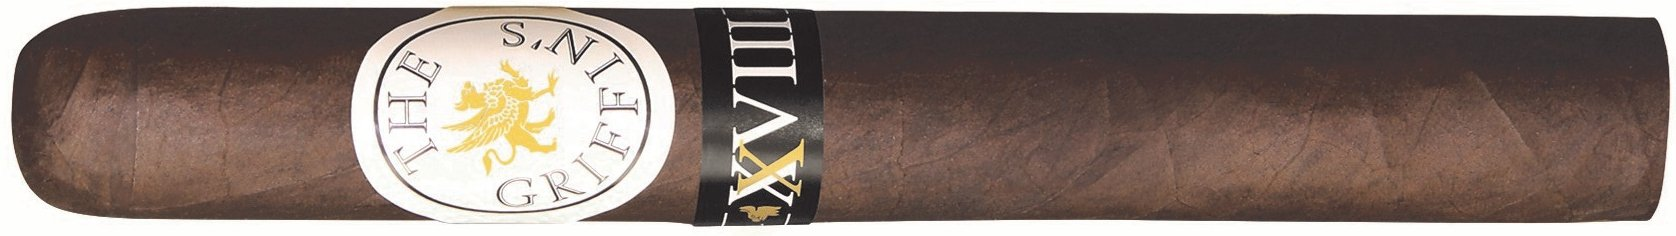 Griffin's Special Editions XXVIII 2012 Corona Extra